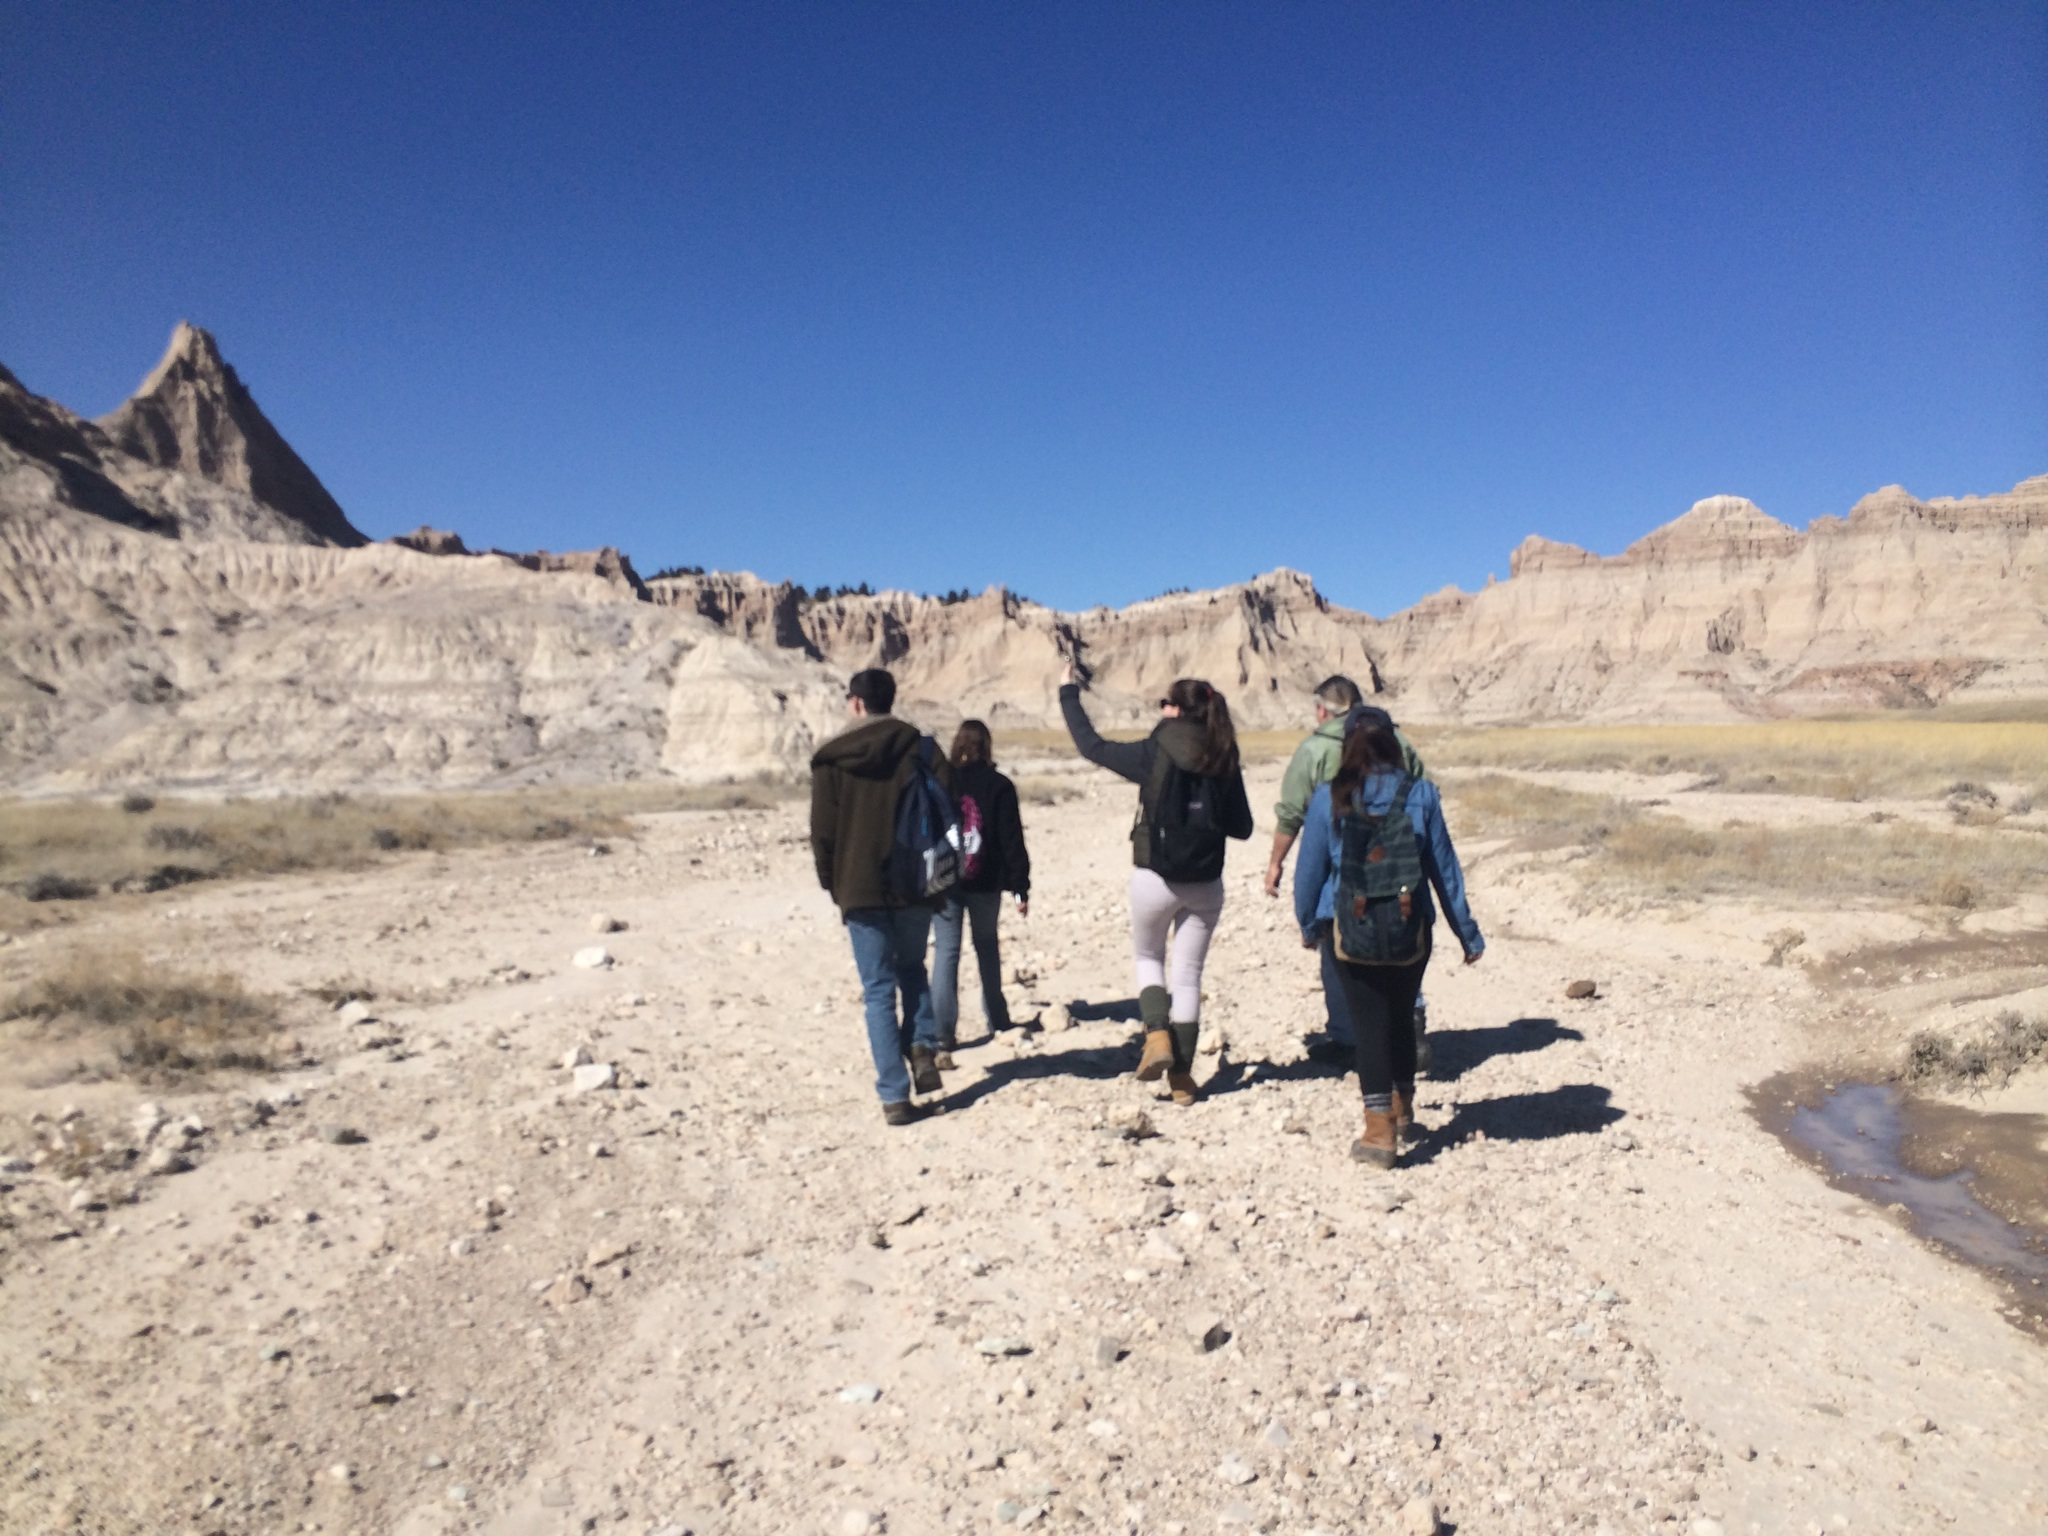 Students at Pine Ridge Indian Reservation